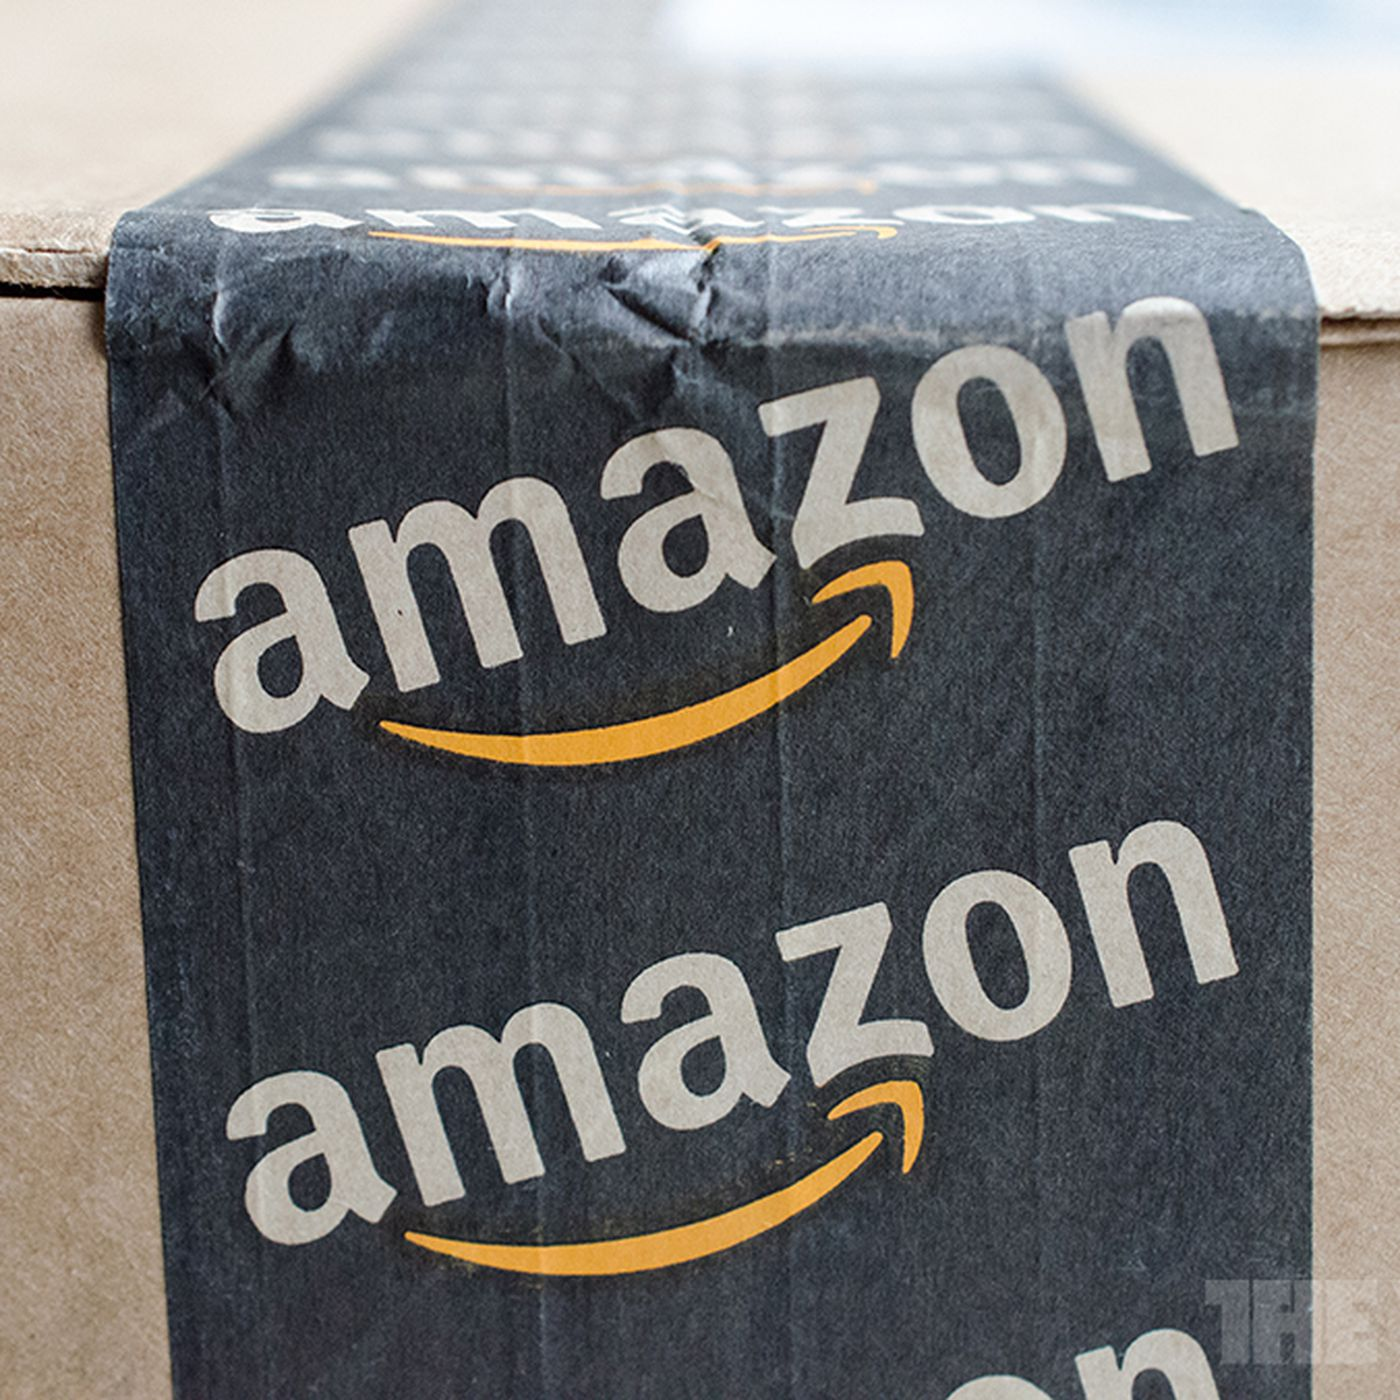 Amazon Prime Comes To Canada With Free Two Day Shipping But No Instant Video The Verge